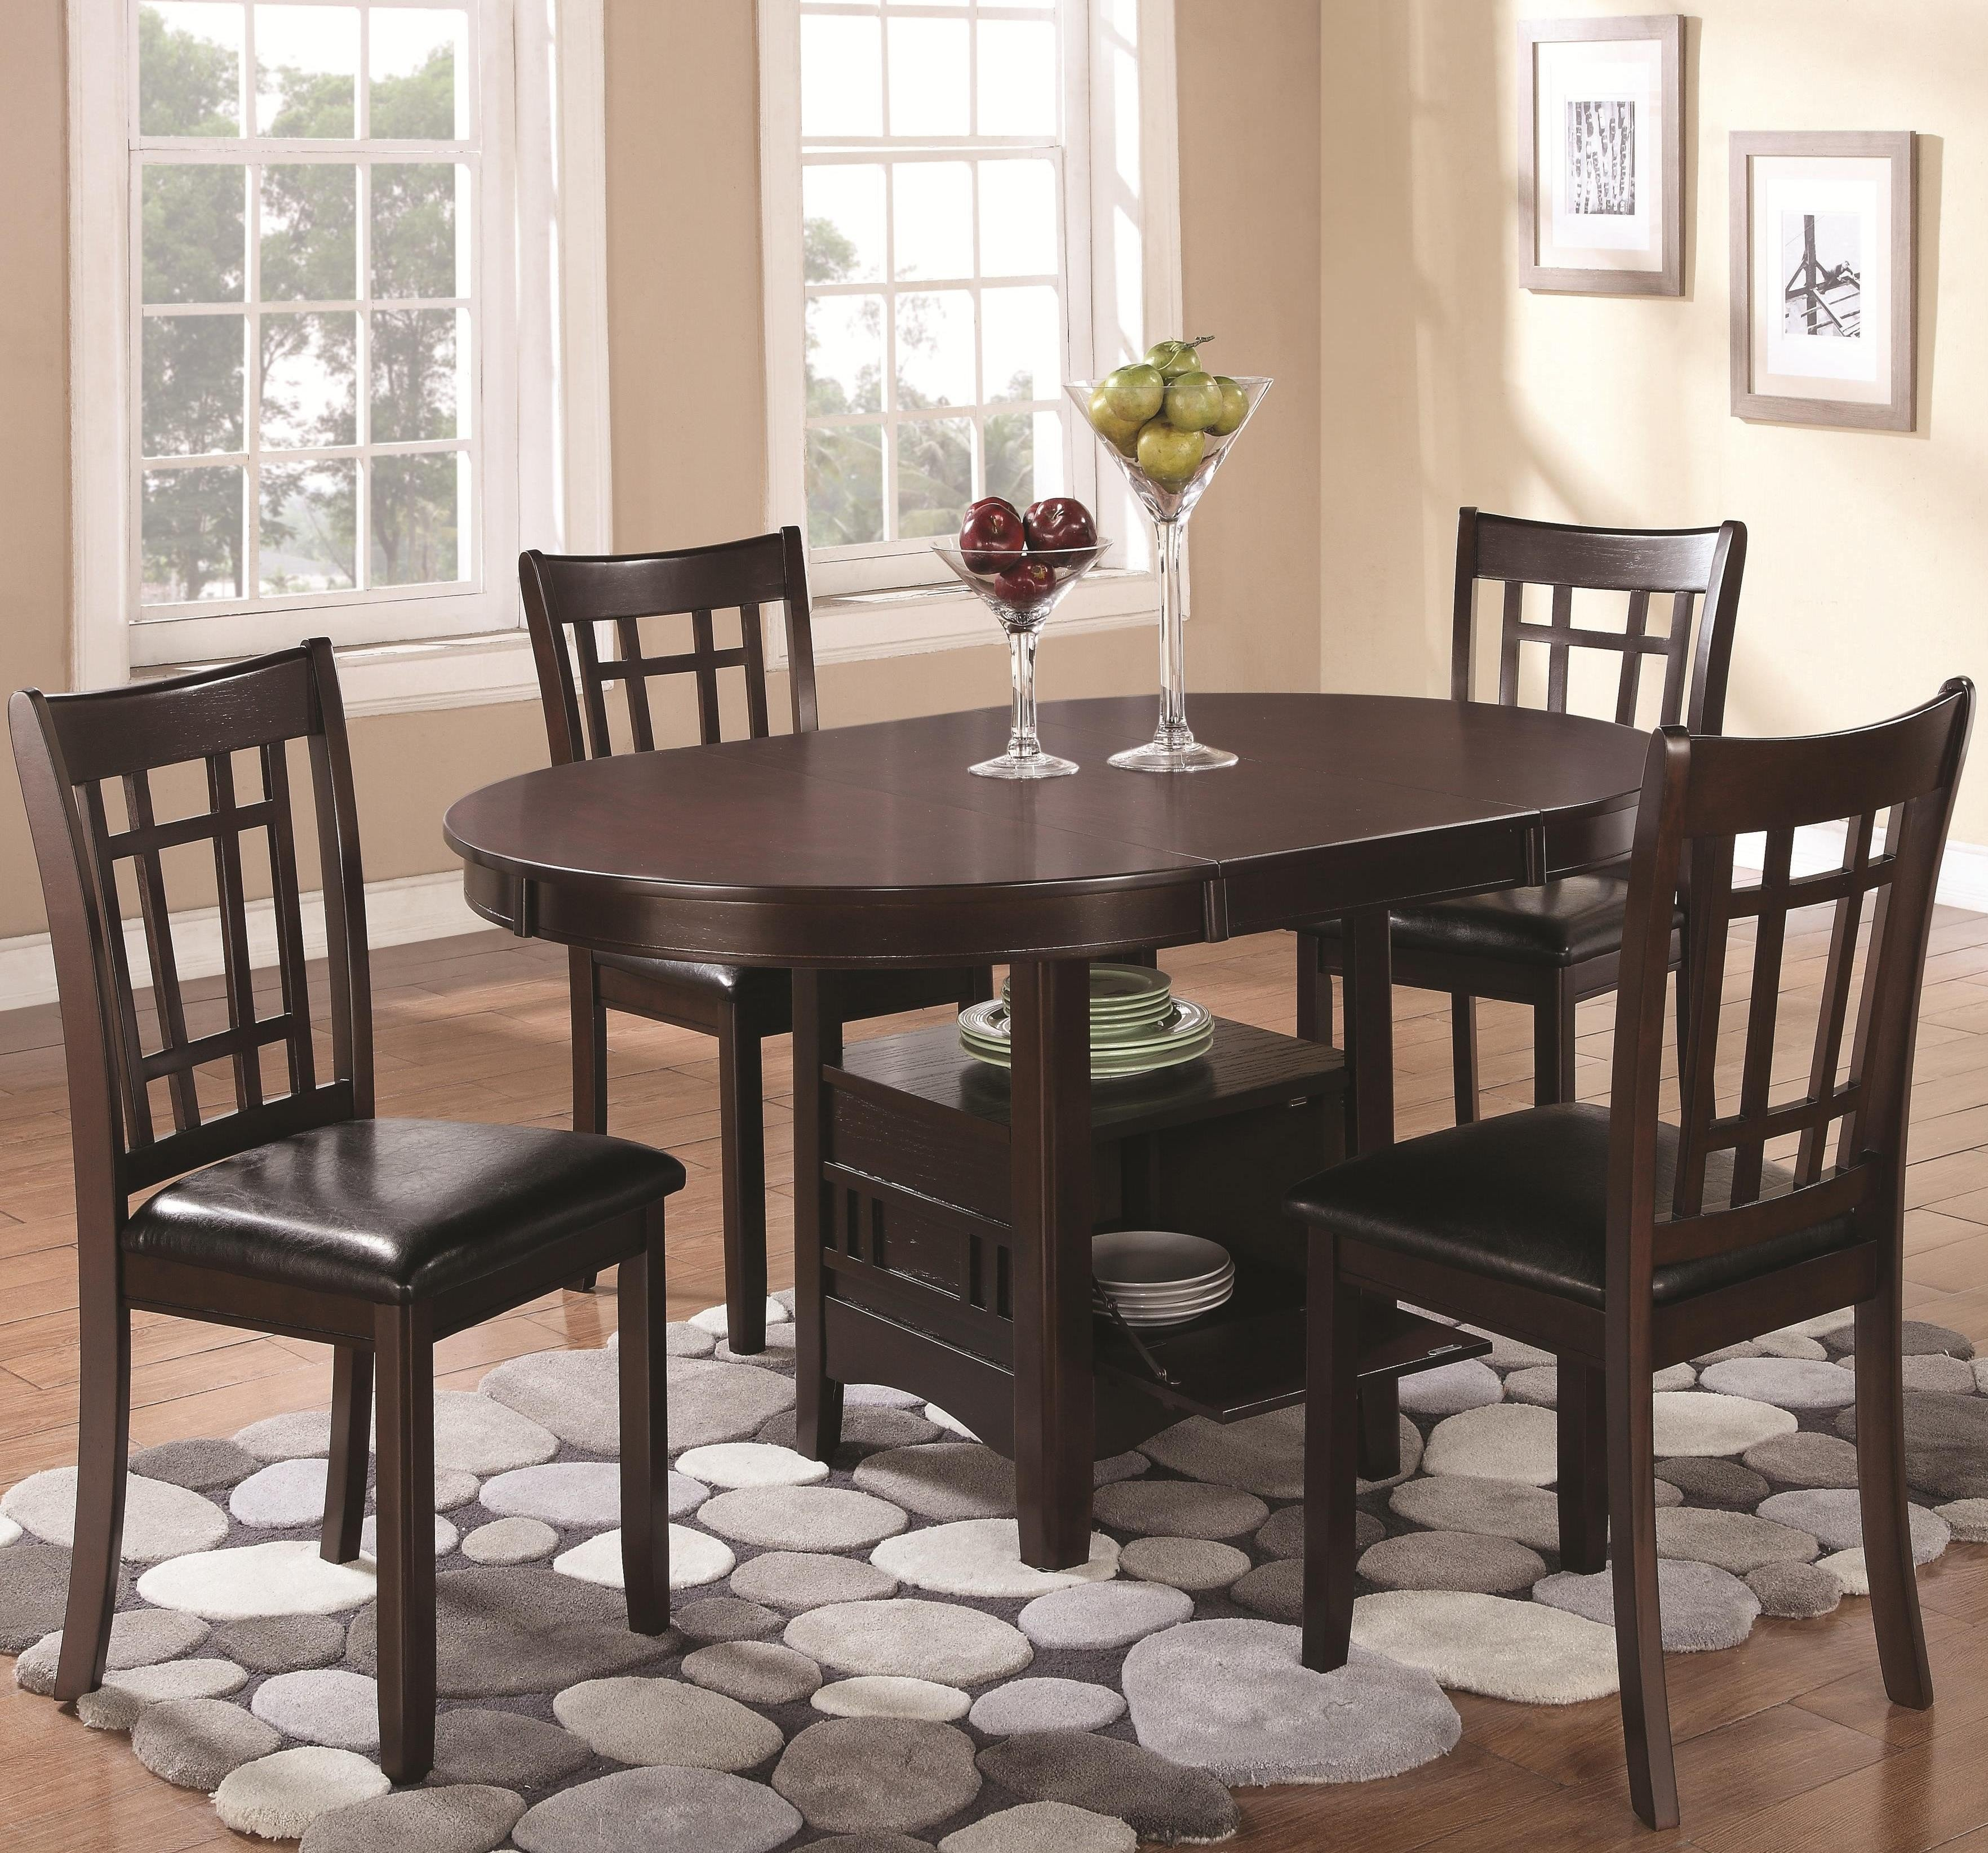 Dining Room Set For 10